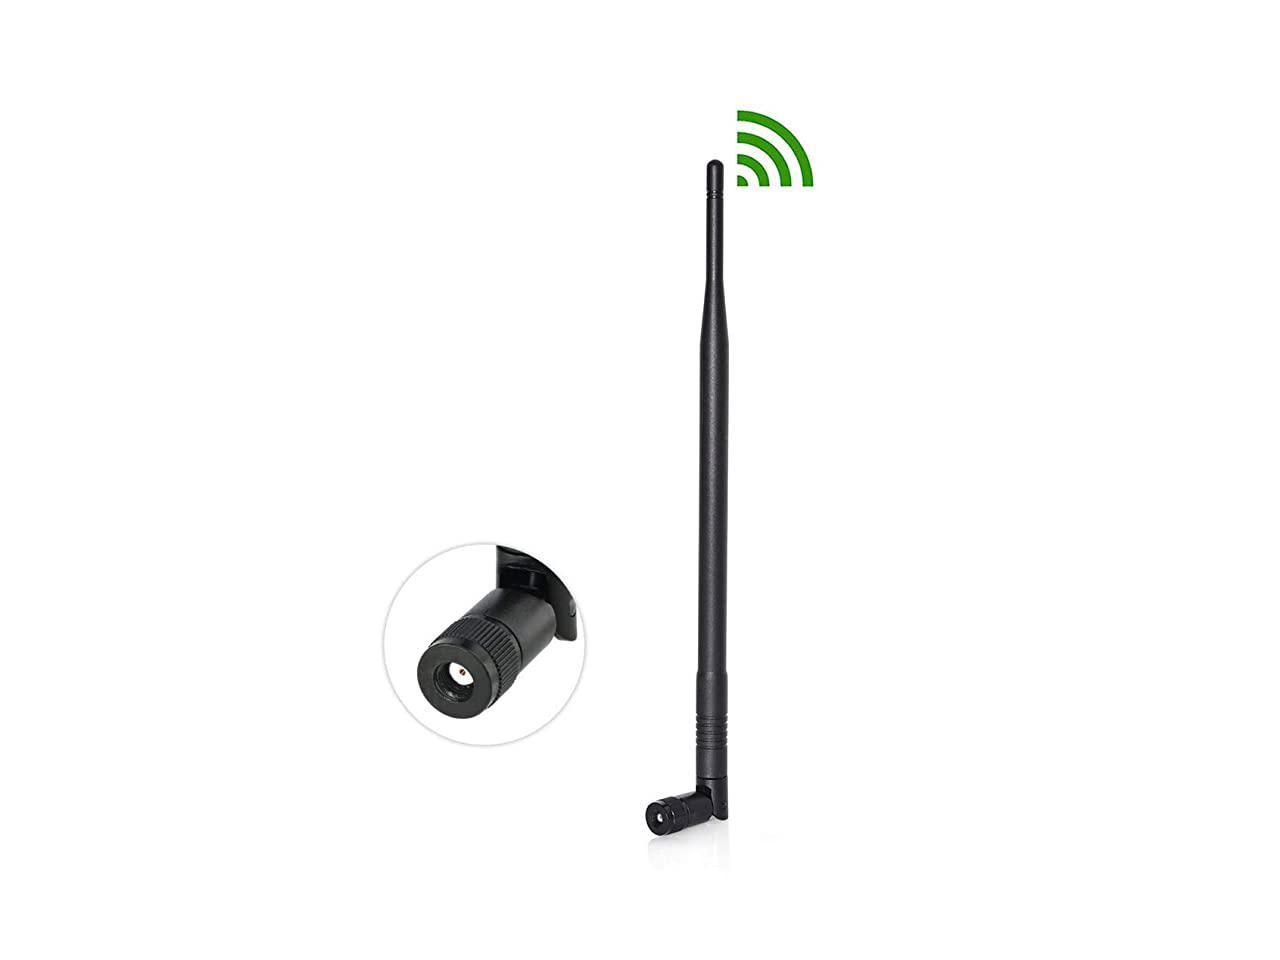 LINK-S-V RP-SMA Antenna For Spypoint Mobile Verizon 4G LTE HD Game Trail Camera